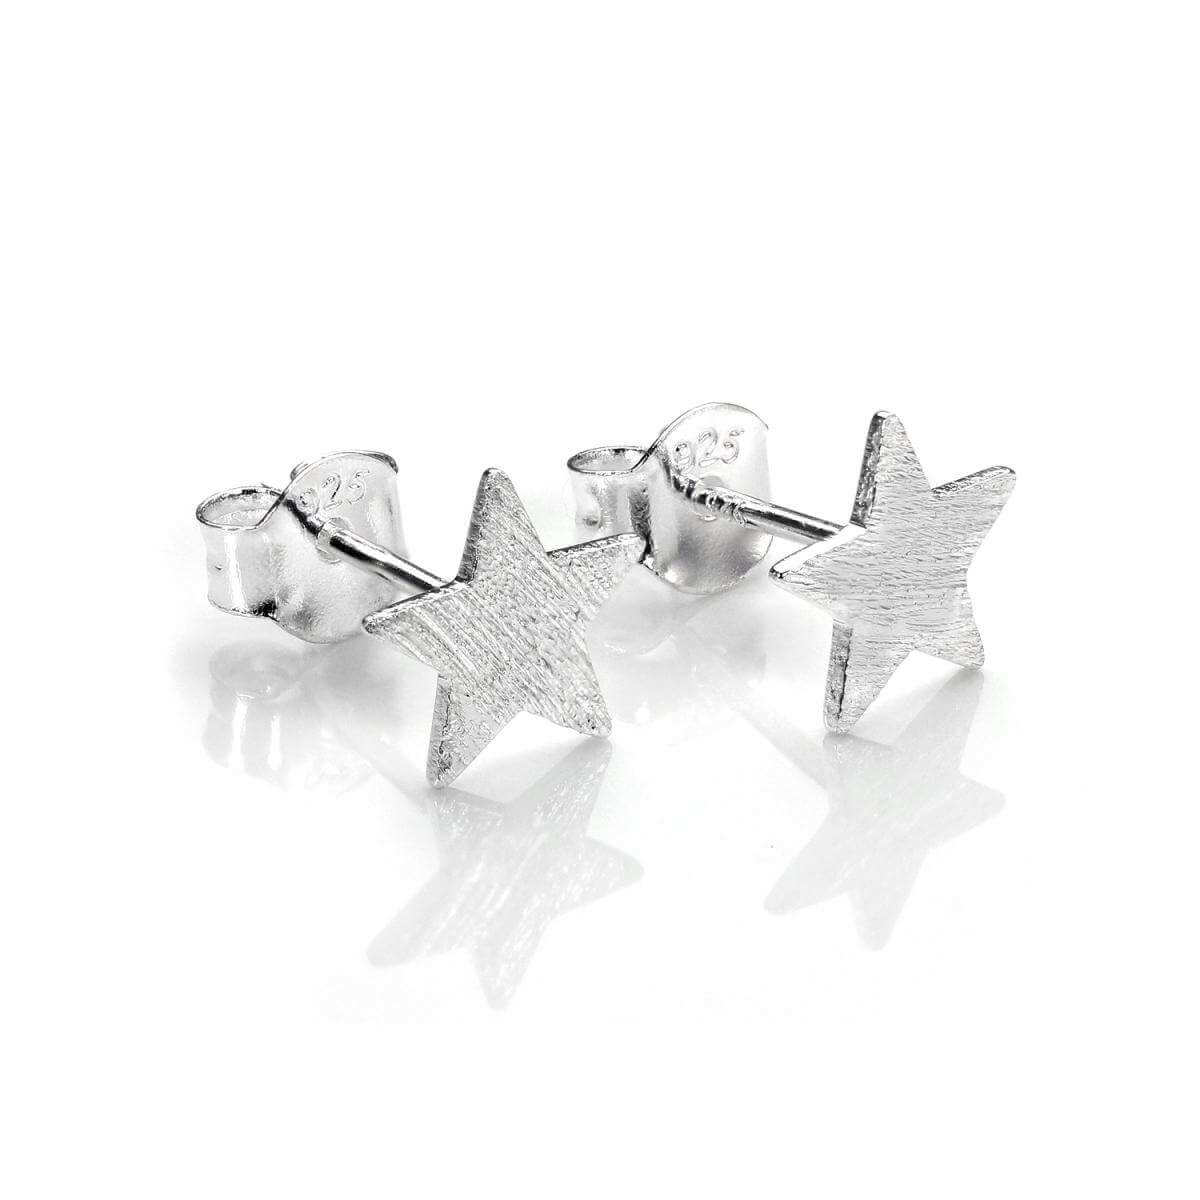 Brushed Sterling Silver Flat Star Stud Earrings